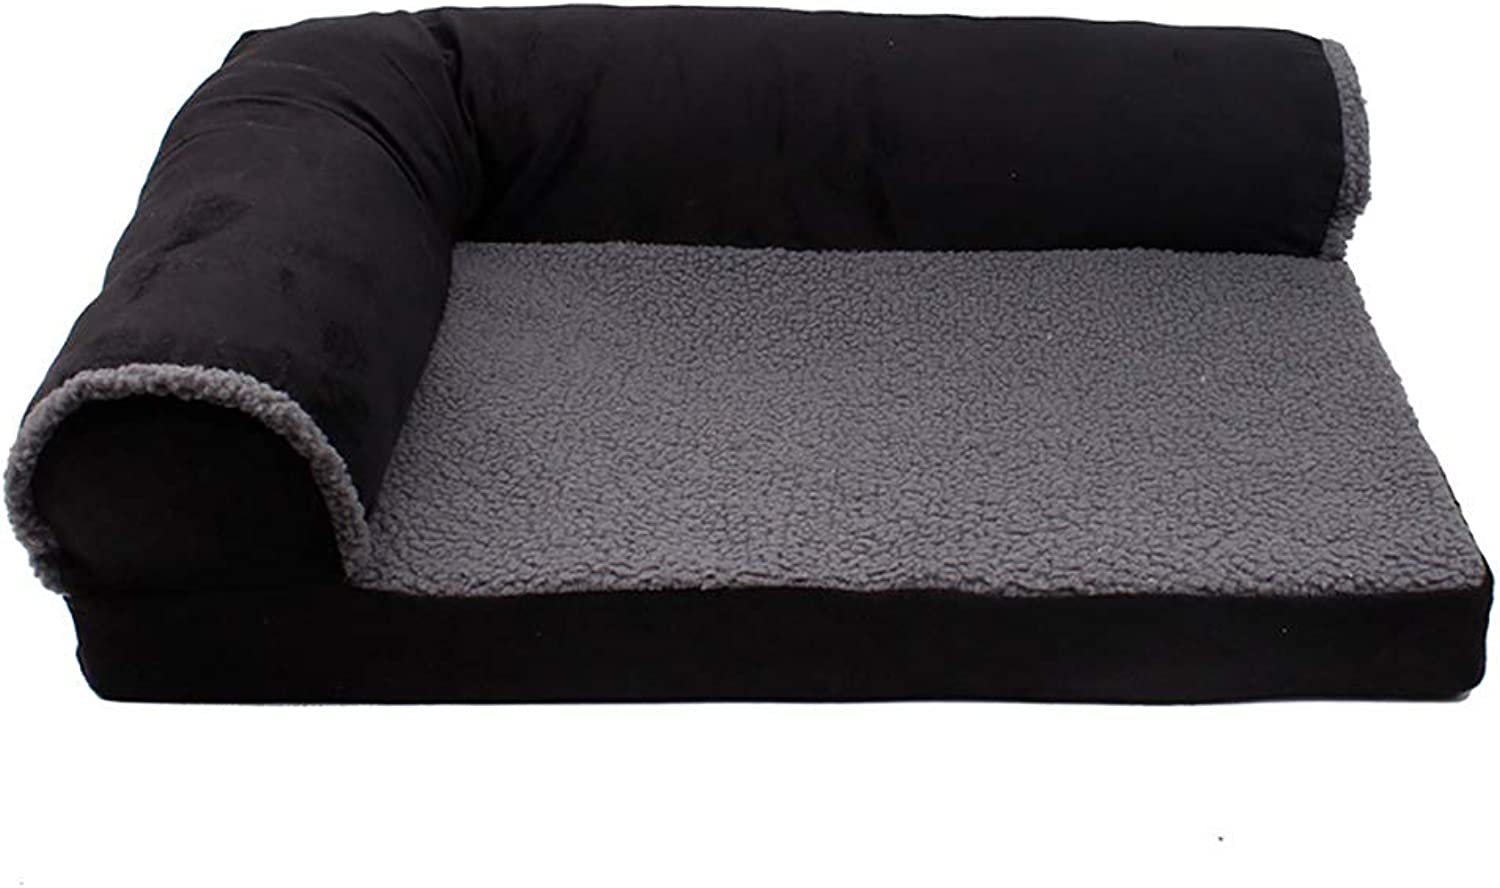 AHDA Pet Supplies, Pet (Cat, Dog) Sofa, Warm in Autumn and Winter, Removable and Washable,Black,80cm60cm